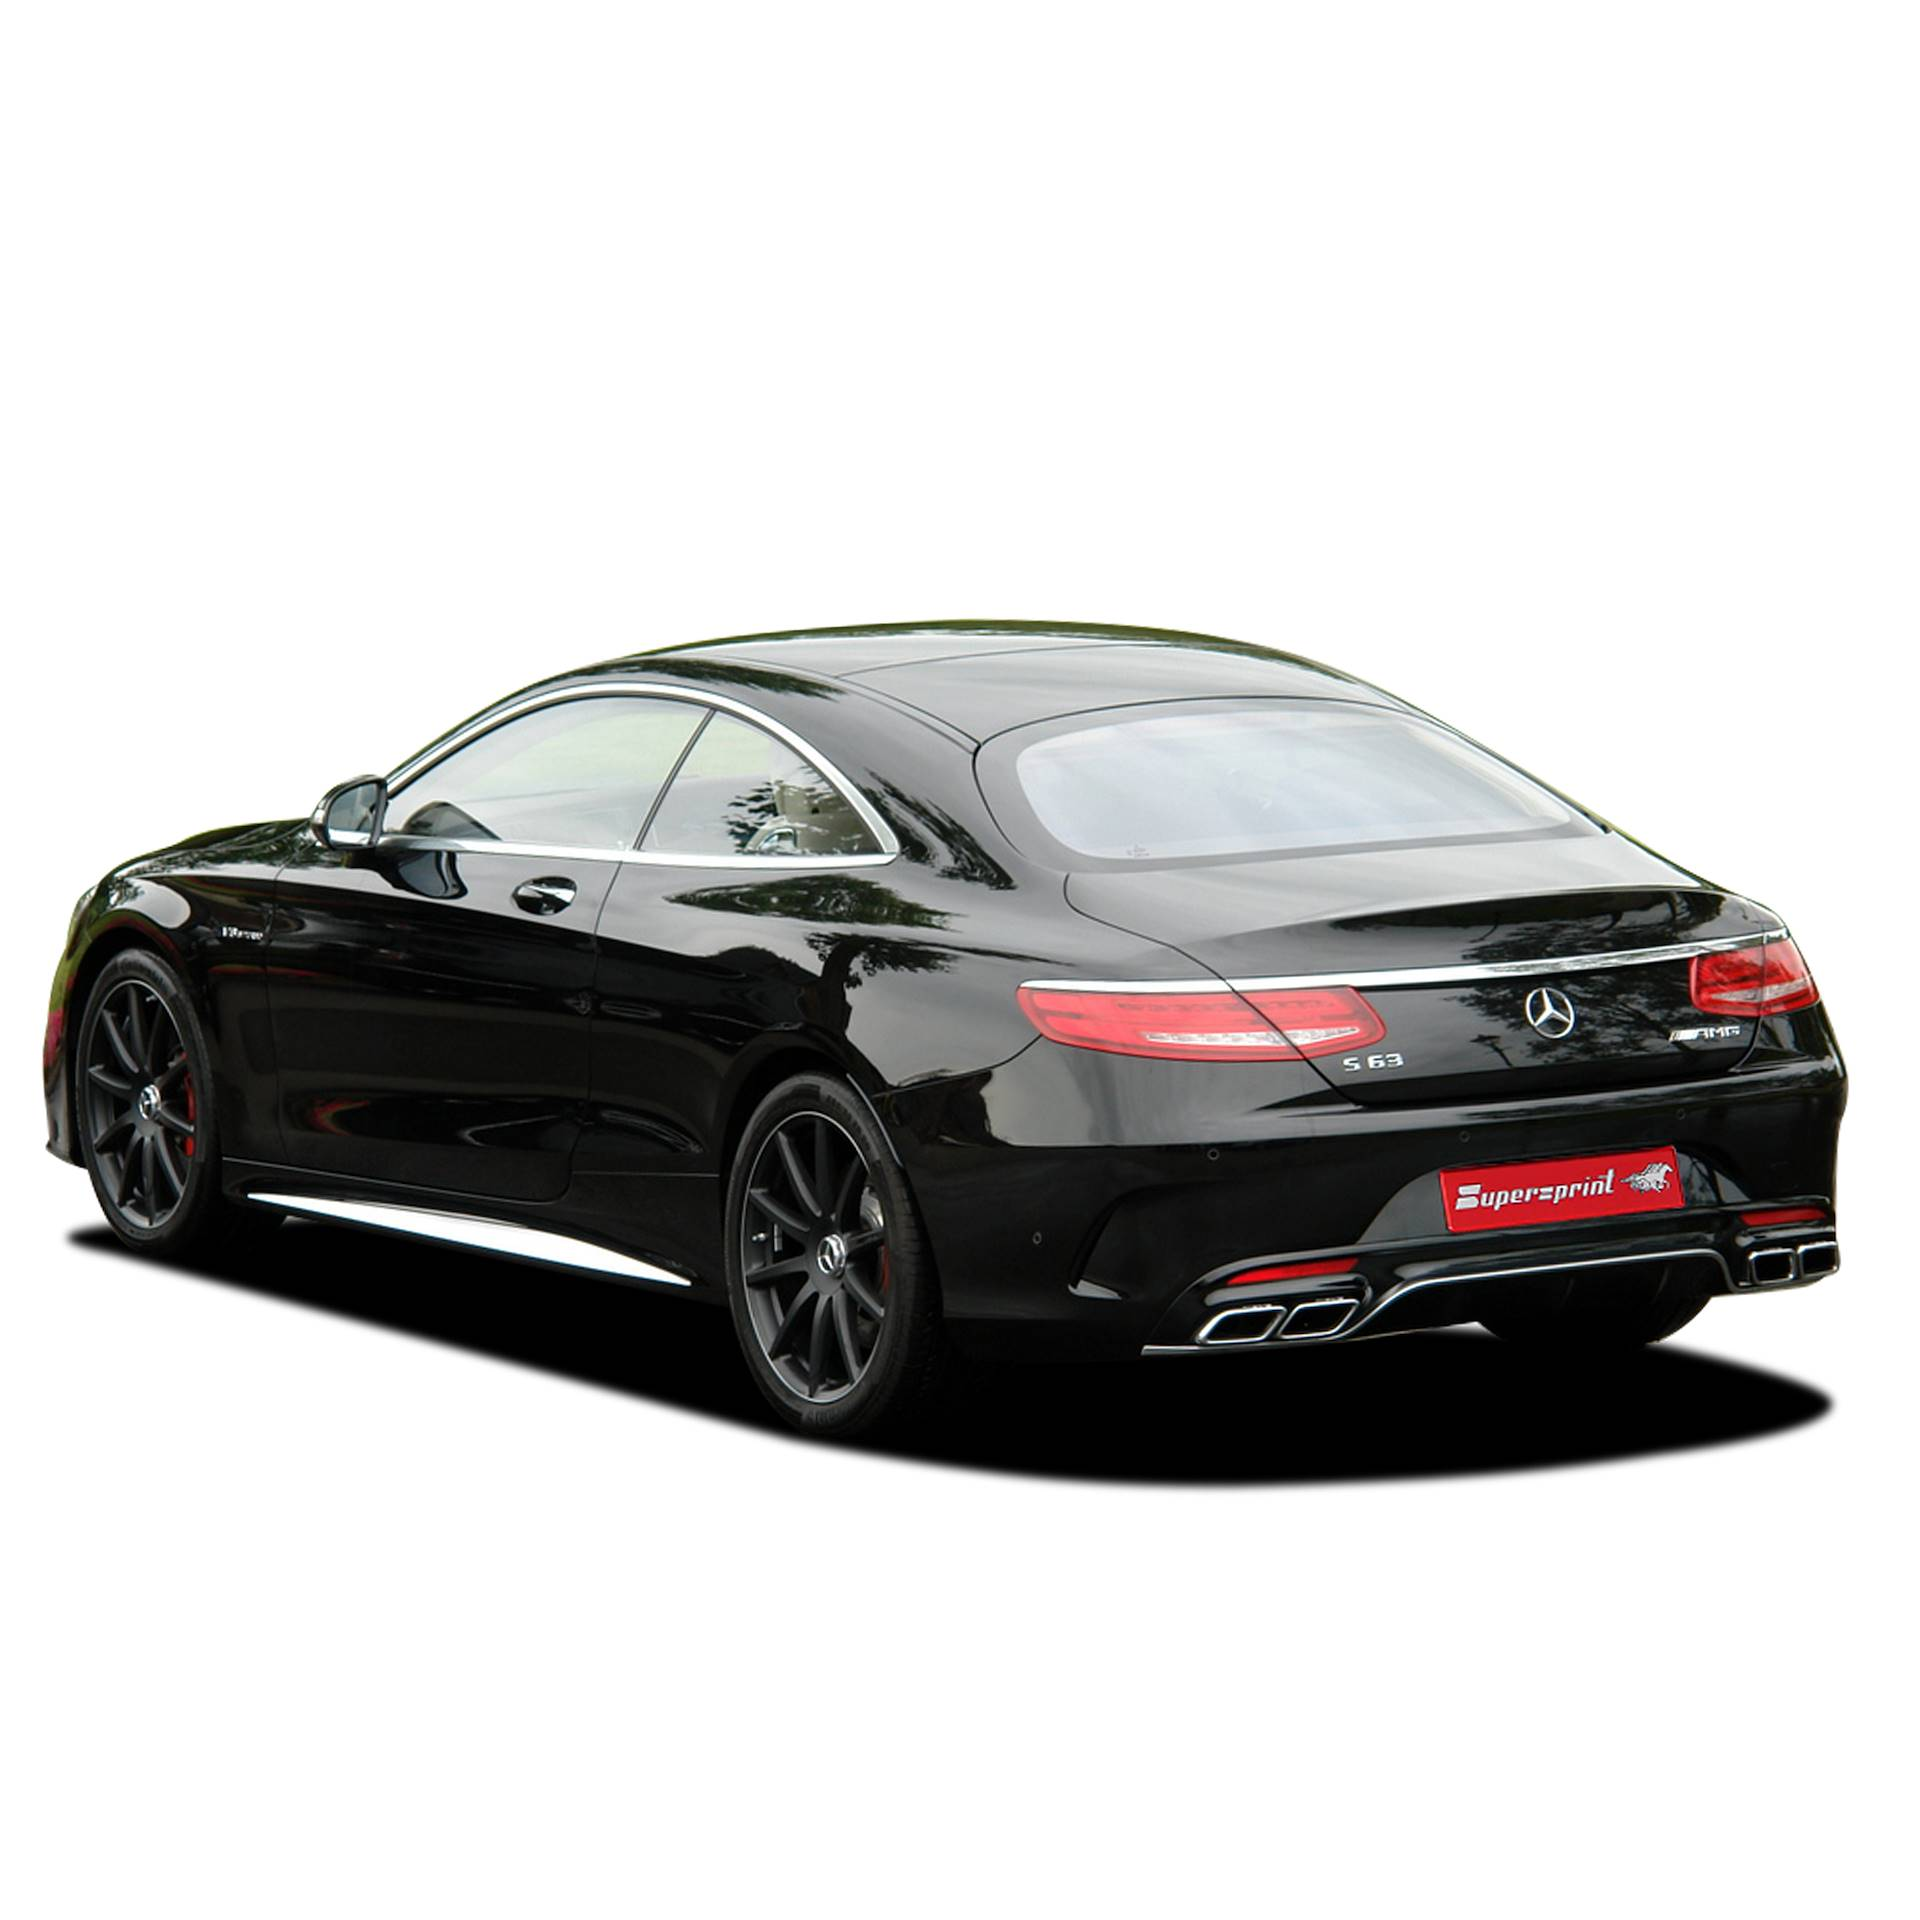 MERCEDES C217 S 63 AMG 5.5i V8 Bi-Turbo (M157 - 585 Hp) 2015 -> 2017 (带阀门)